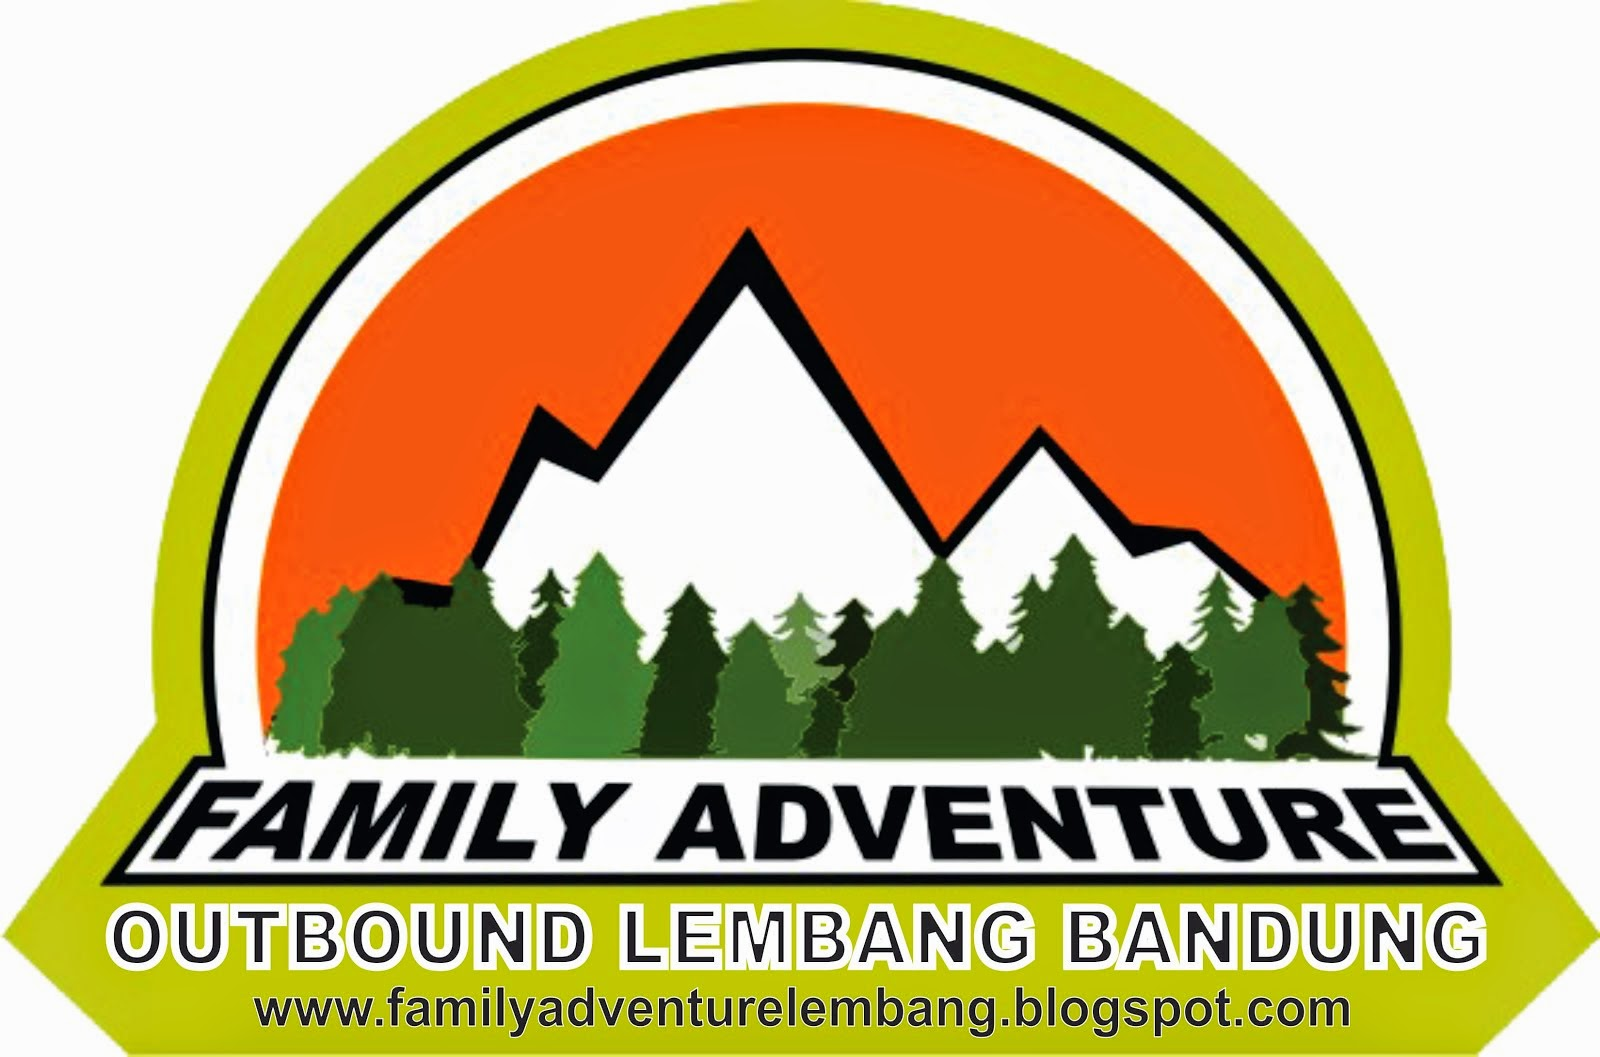 FAMILY ADVENTURE EVENT ORGANIZER